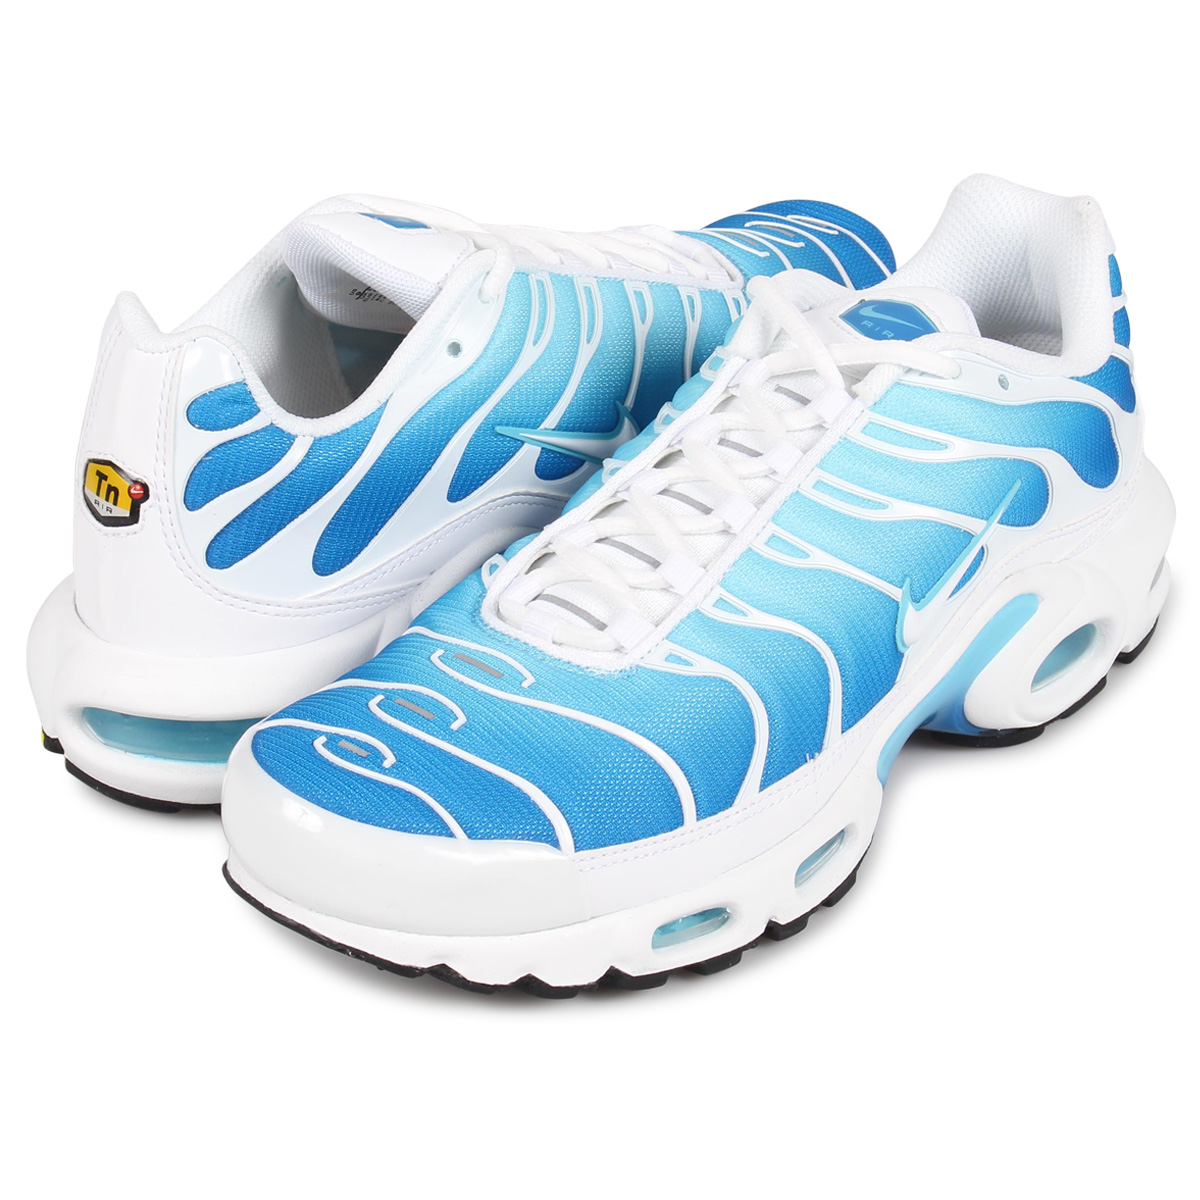 newest collection 96537 a7f8d Nike NIKE Air Max plus sneakers men AIR MAX PLUS blue 852,630-411